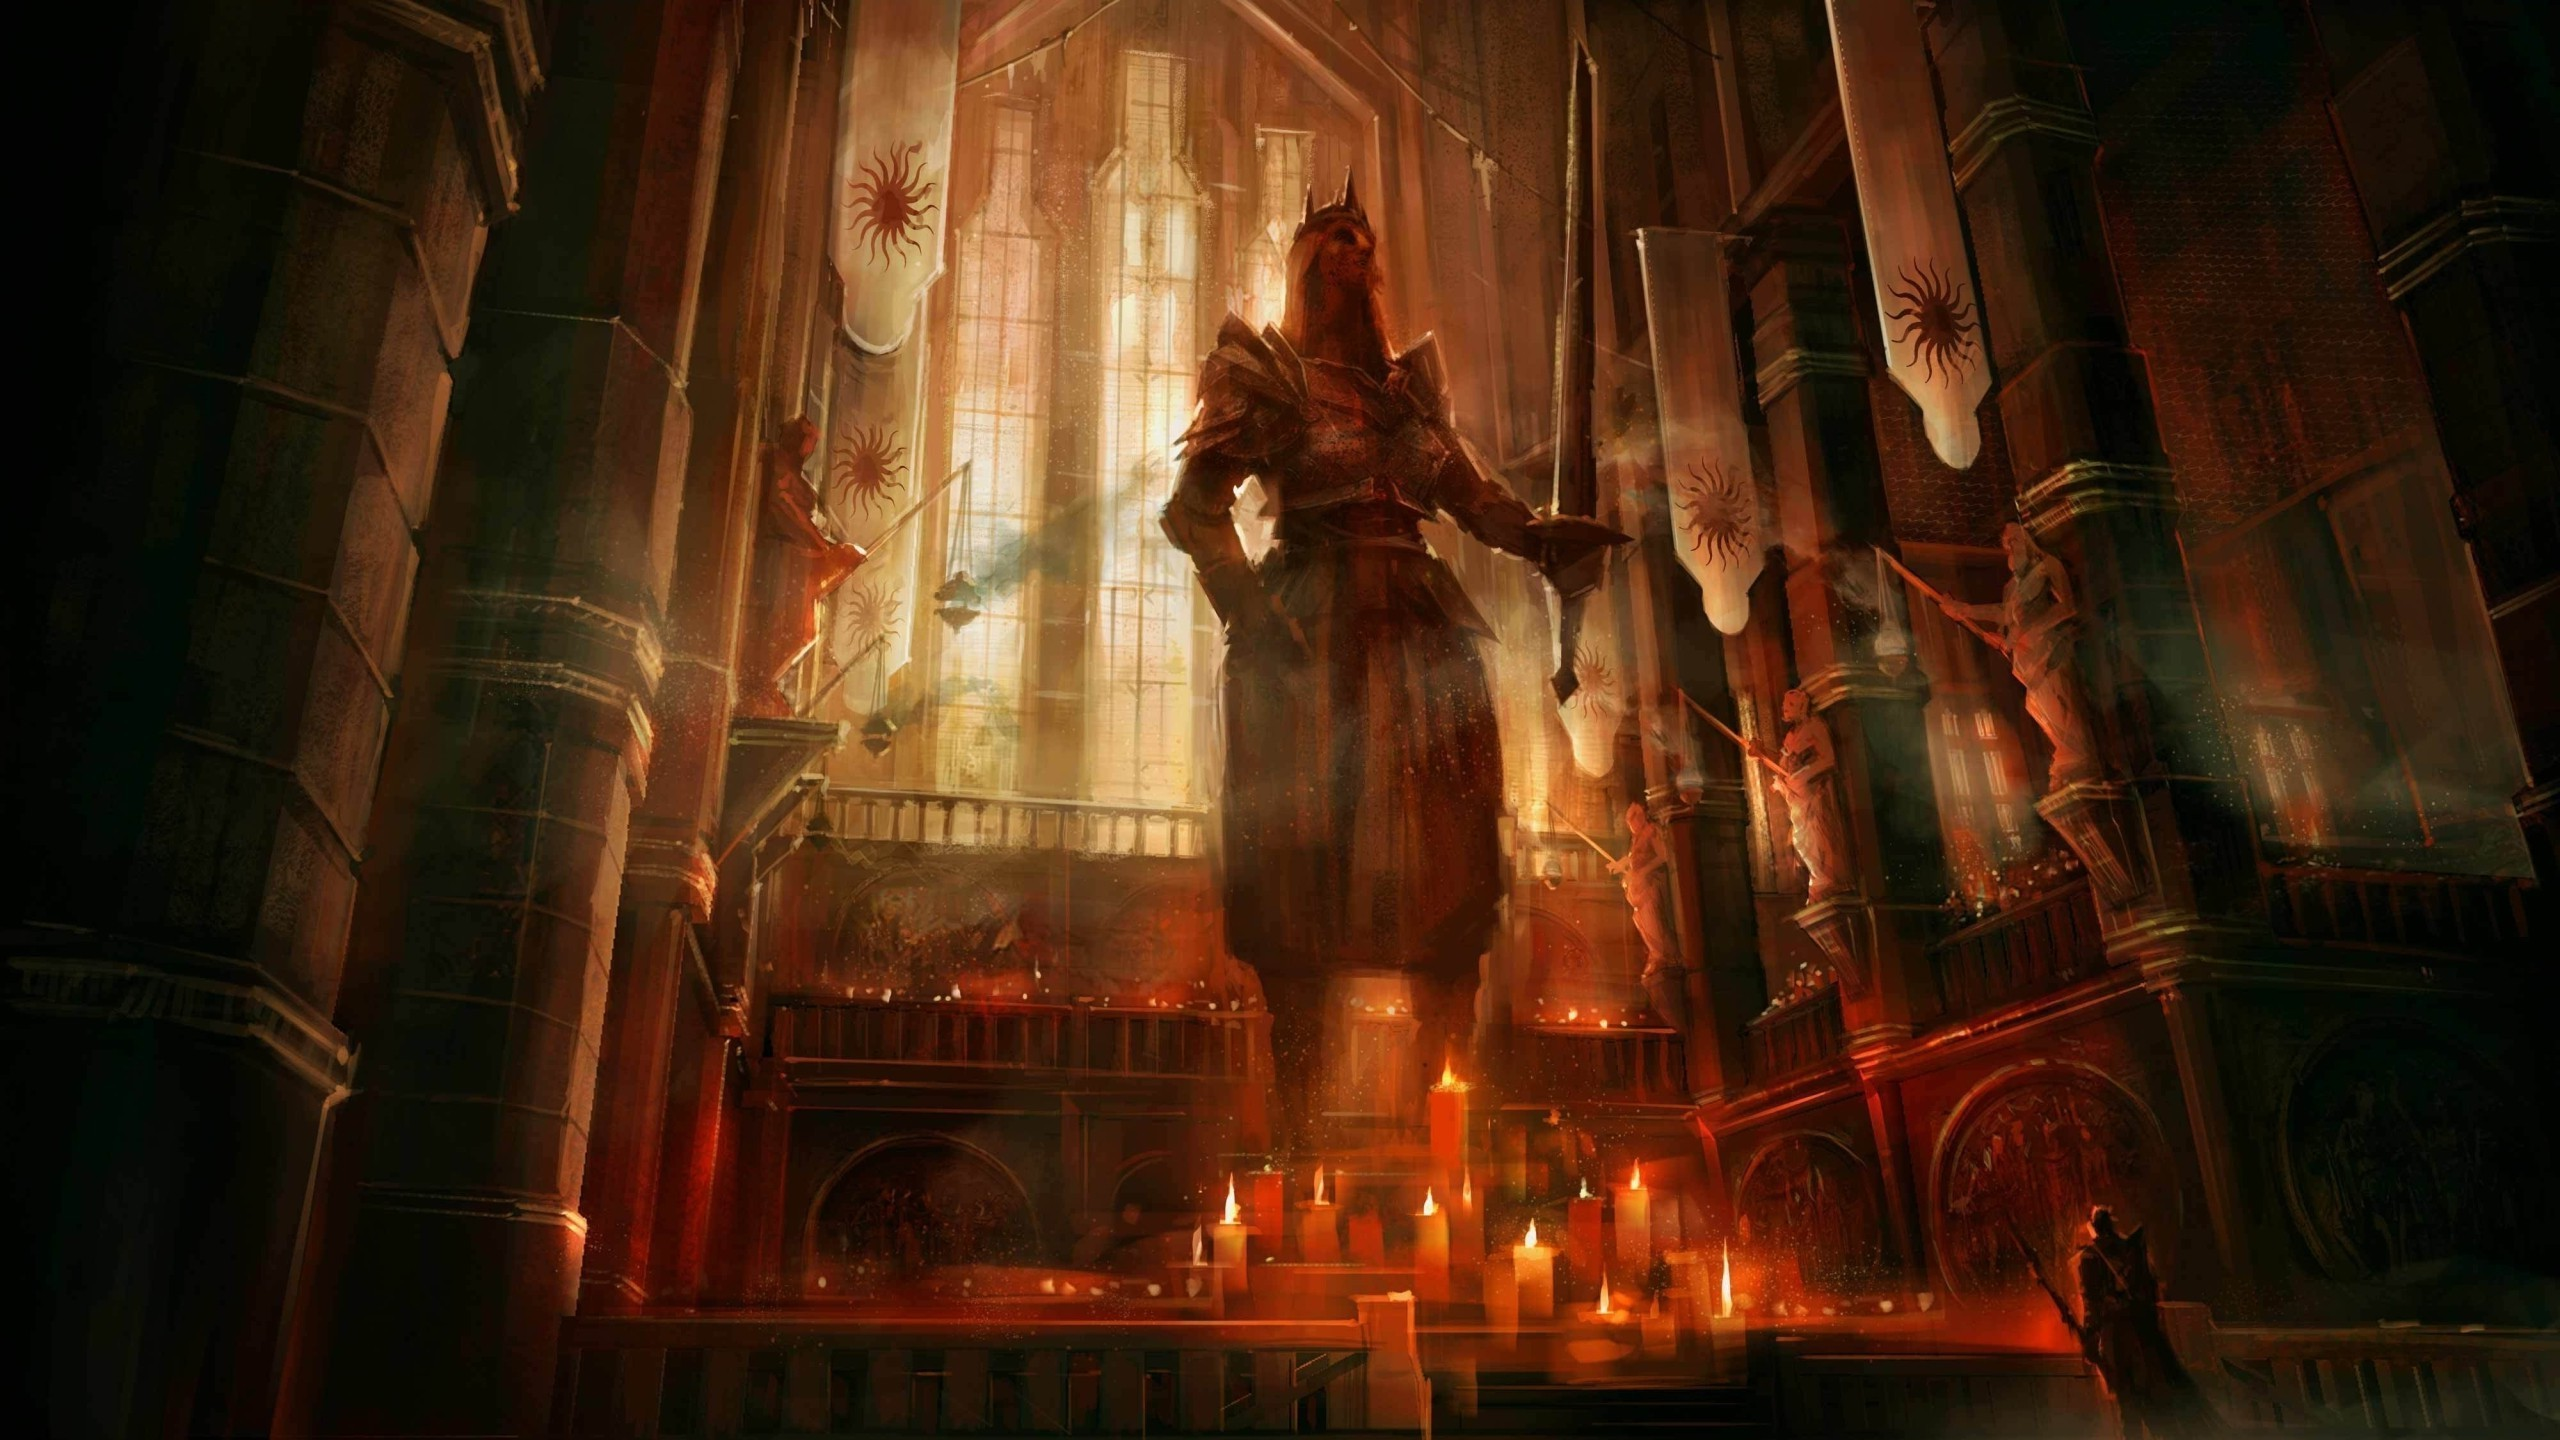 Dragon Age II, Dragon Age, Fantasy Art, Concept Art, Video Games, Candles,  Statue, Temple Wallpapers HD / Desktop and Mobile Backgrounds